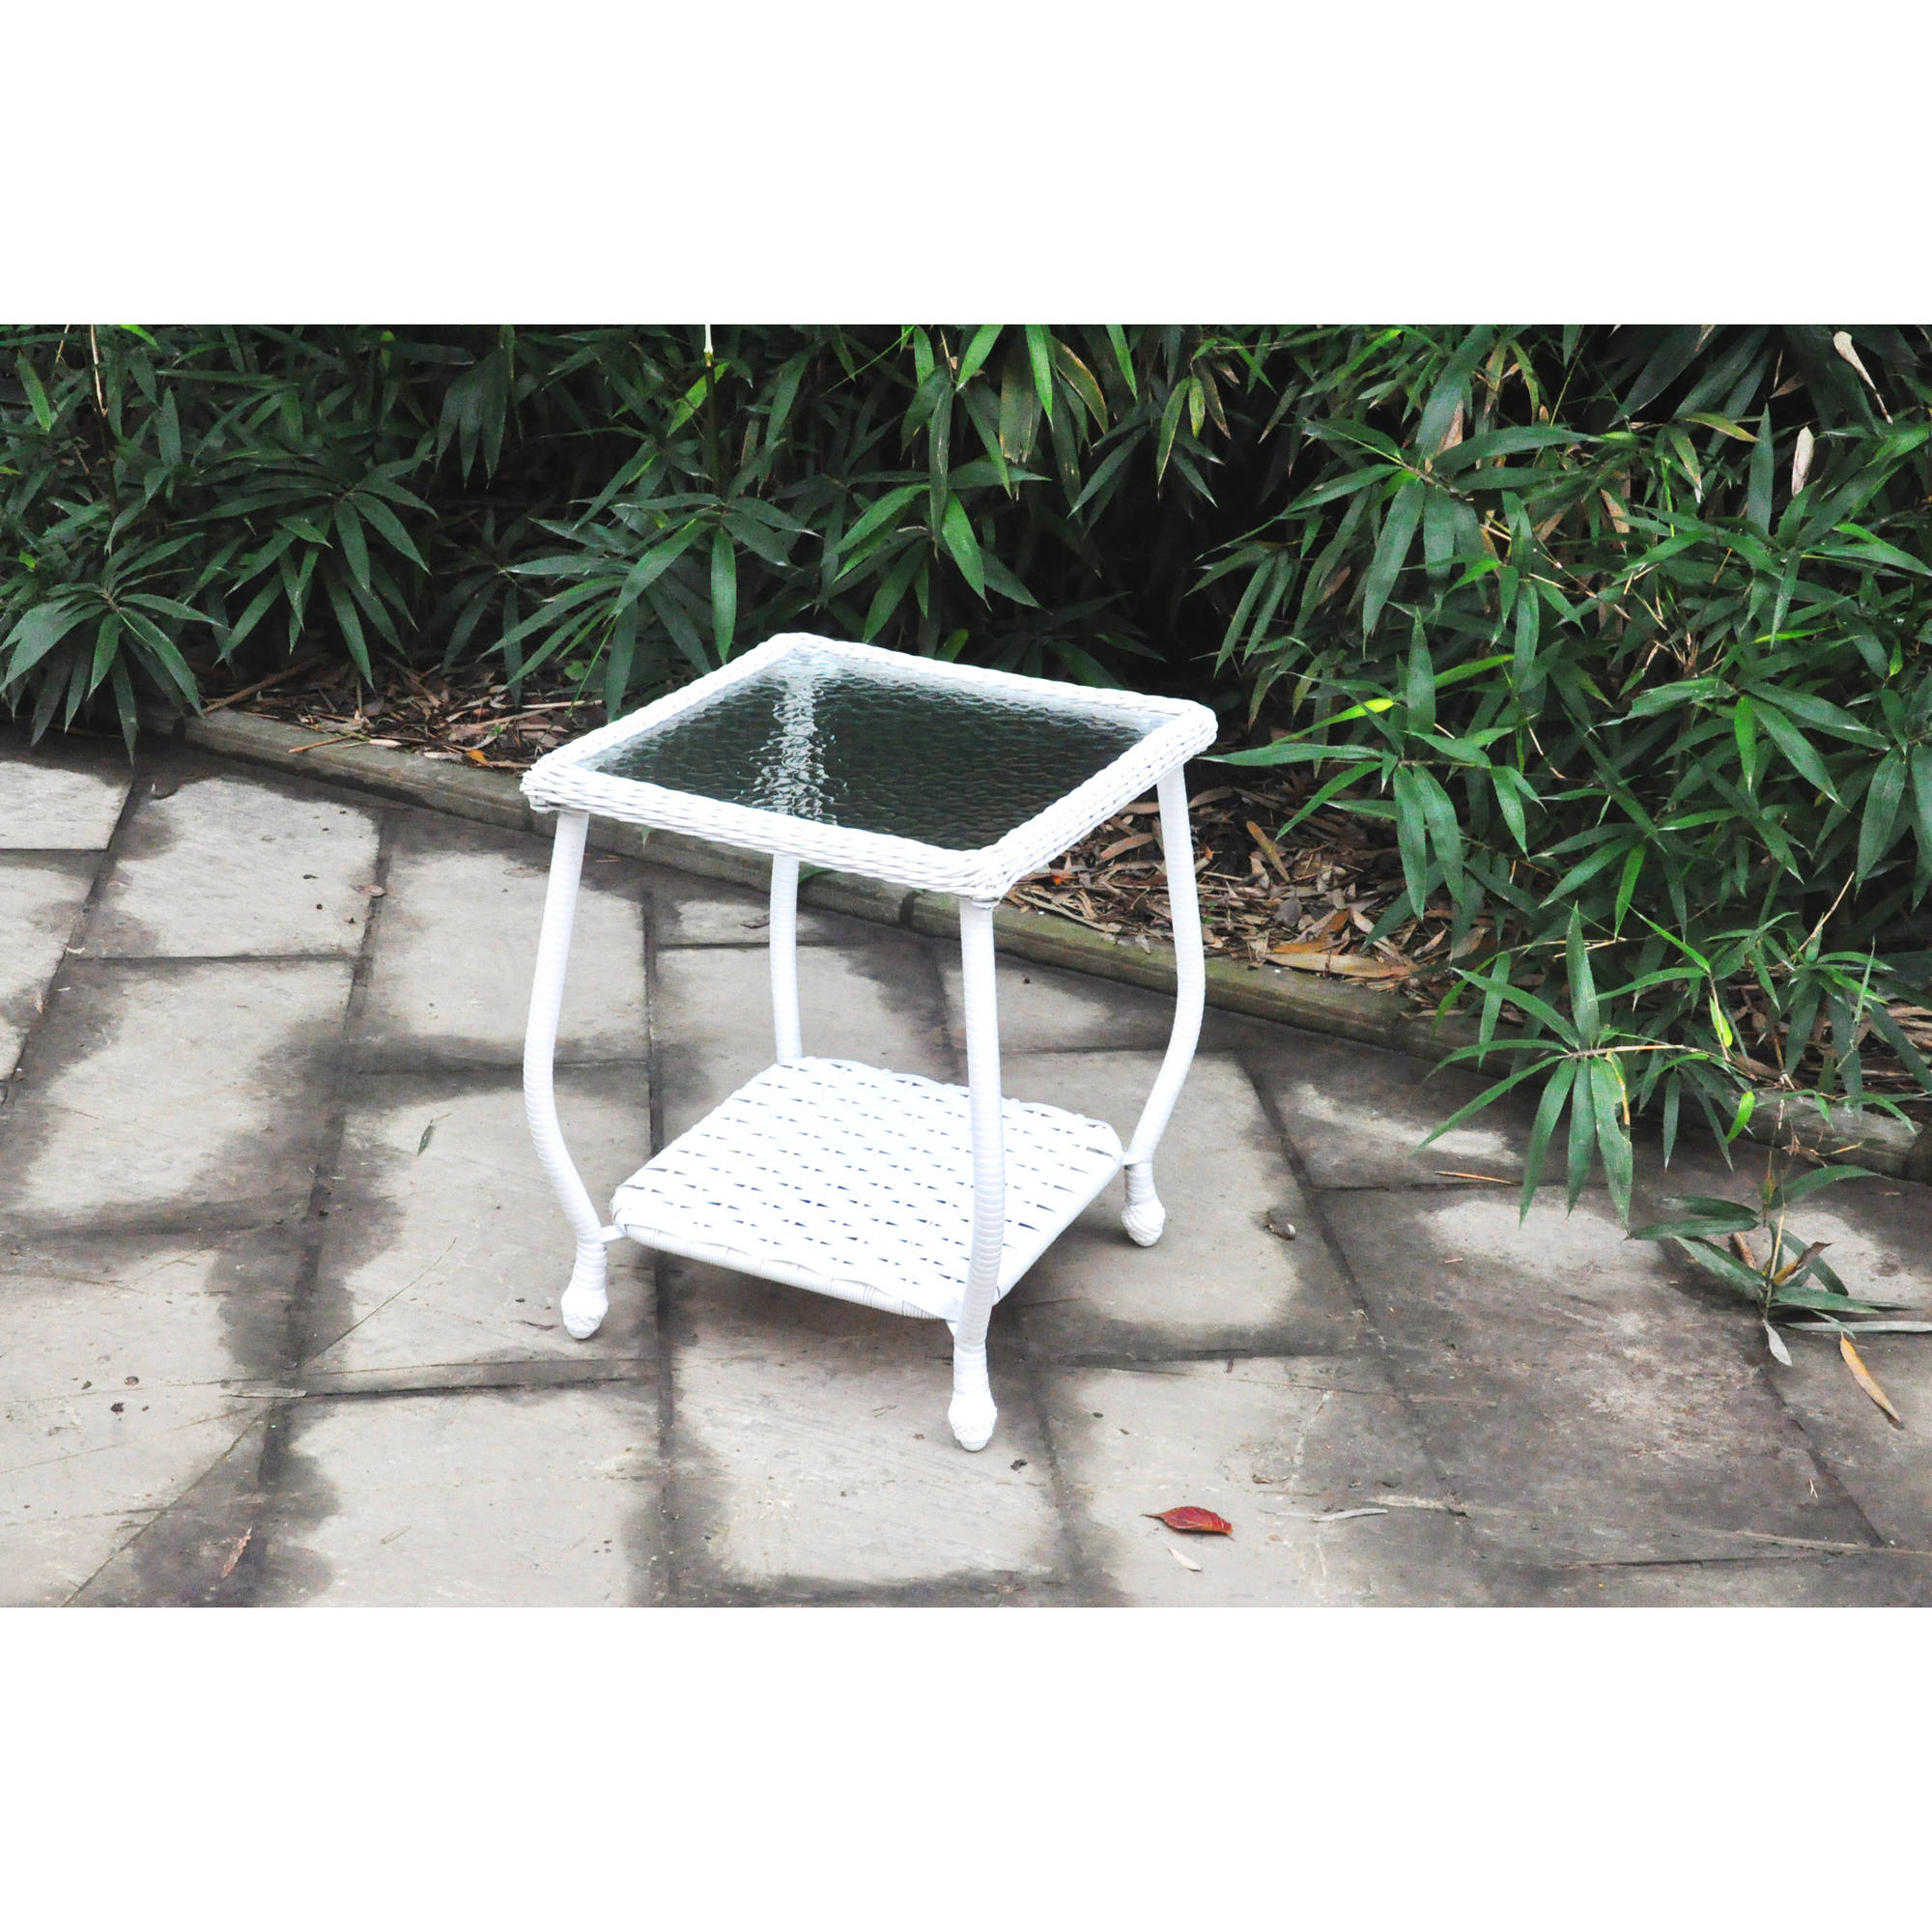 mainstays wicker side table white square accent large blue desk lamp best computer summer furniture bar cherry coffee and end tables patio silver runner placemats entryway with